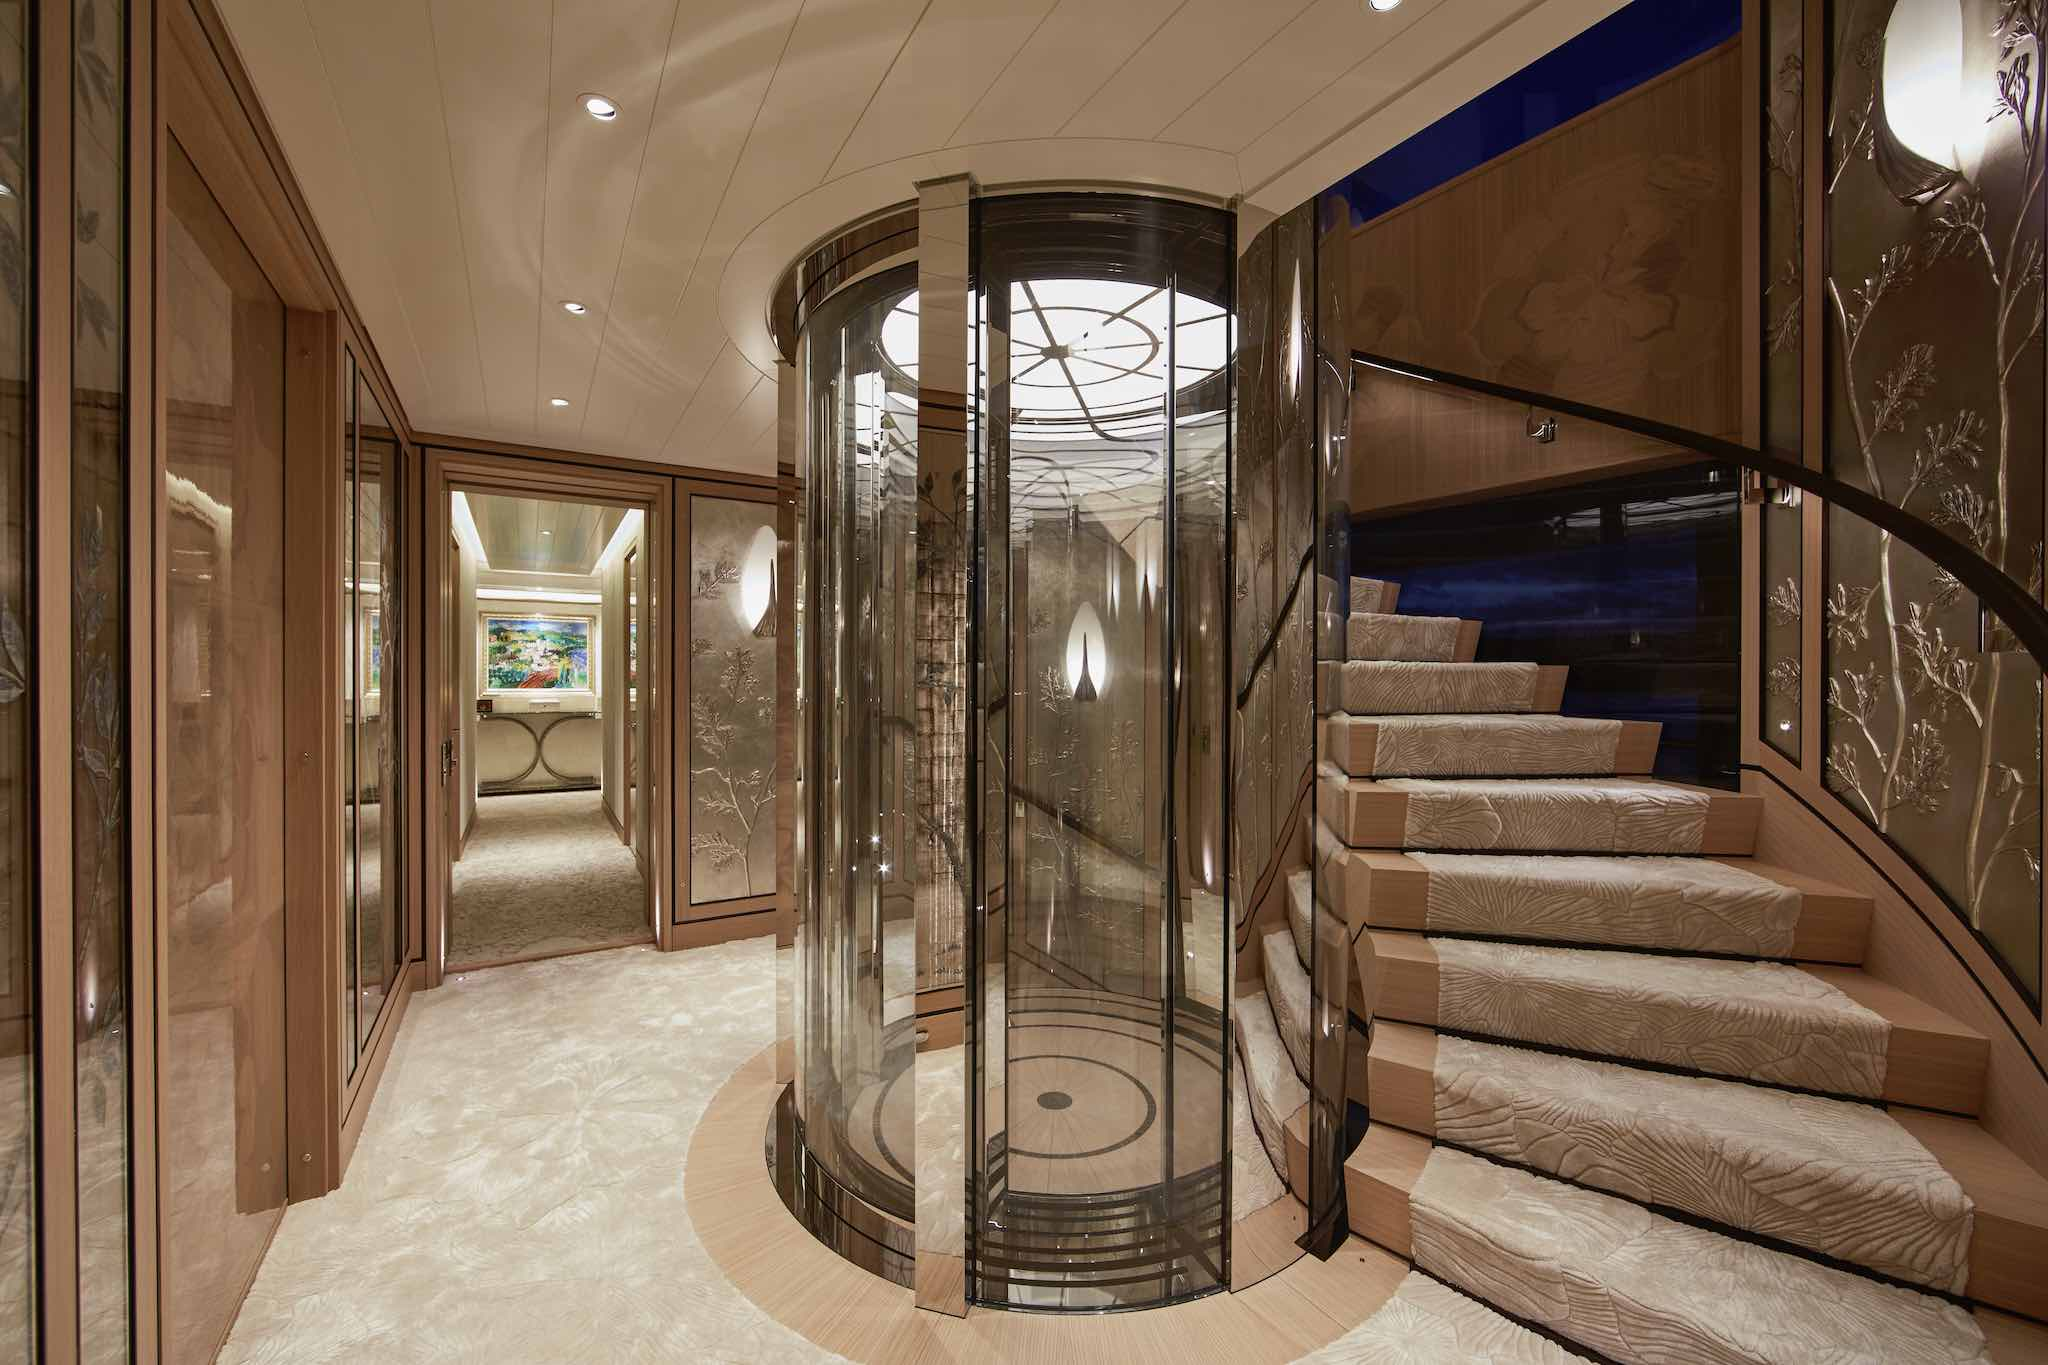 Stairwell With The Glass Elevator